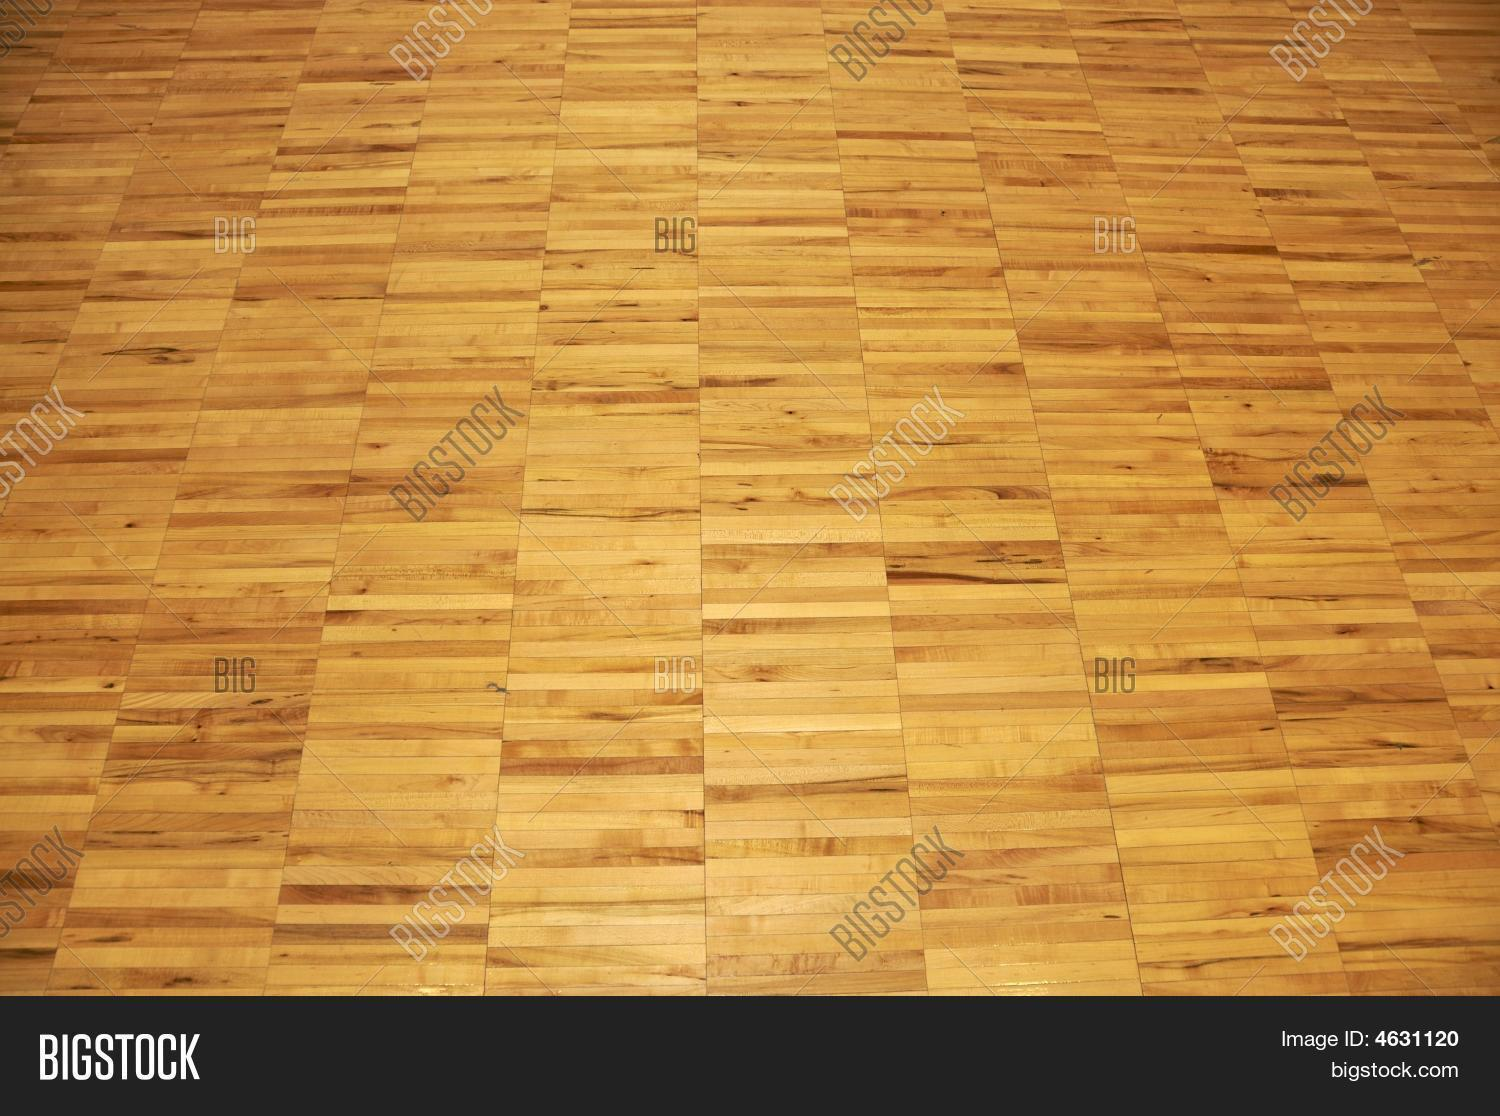 Hardwood Basketball Court Floor Image Amp Photo Bigstock